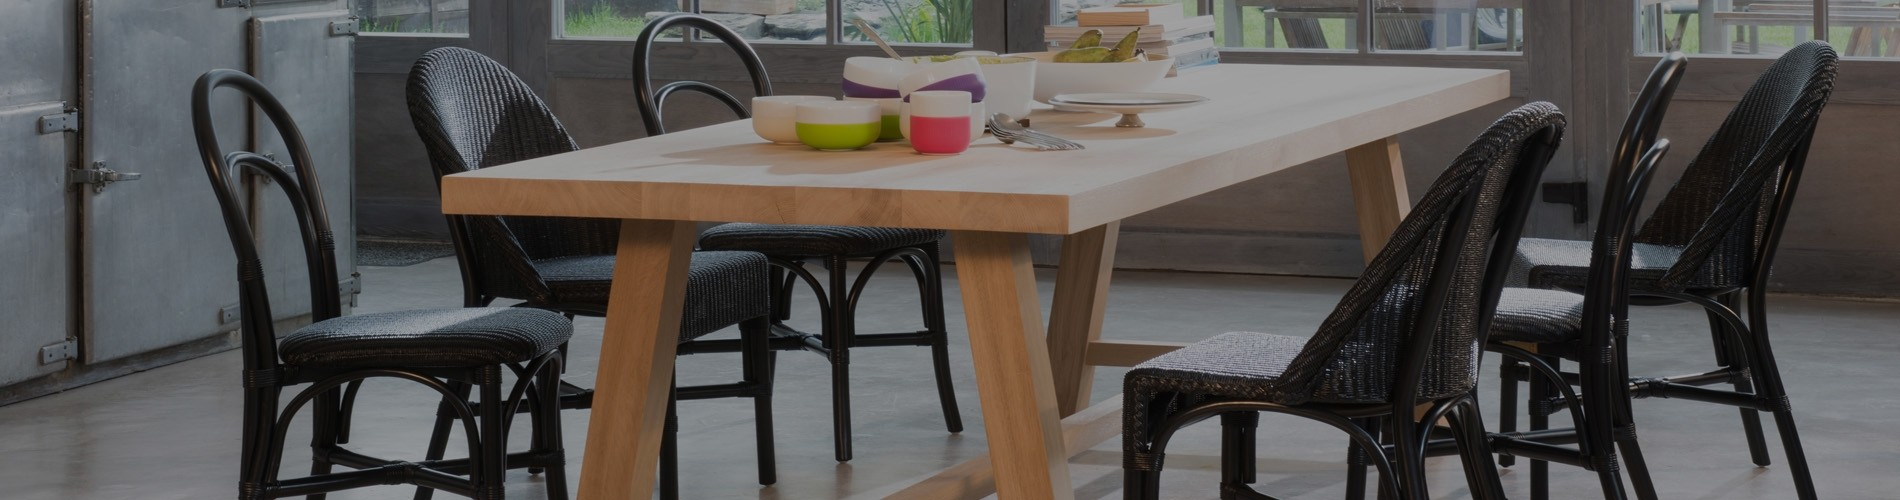 Designer dining tables and chairs from top brands